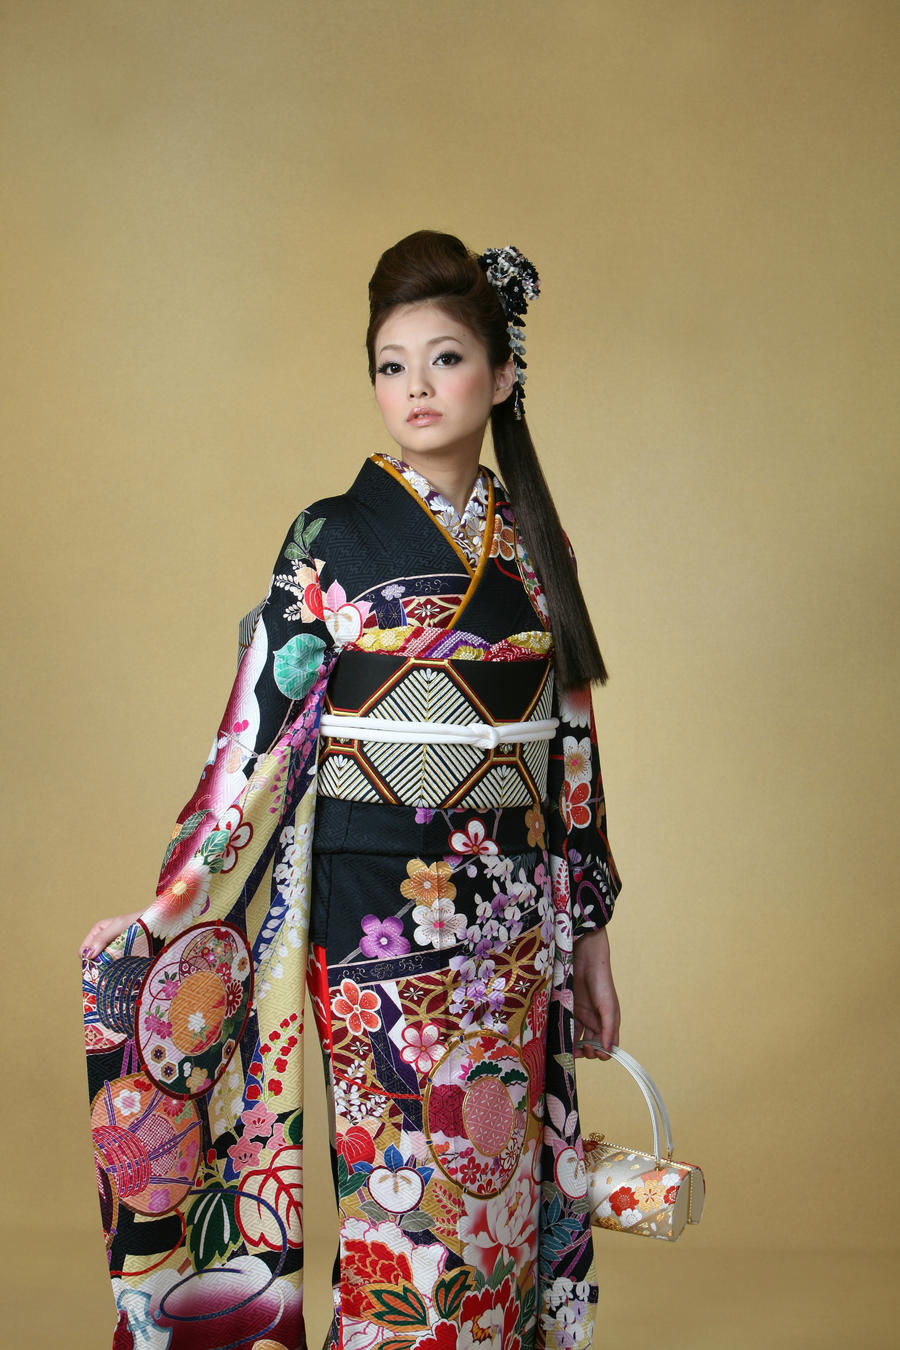 japanese kimono Kimonos are the traditional dress of japan traditionally hand made from silk, modern kimonos are now often made from easy-care fabrics that are easier, faster and less expensive to manufacture.